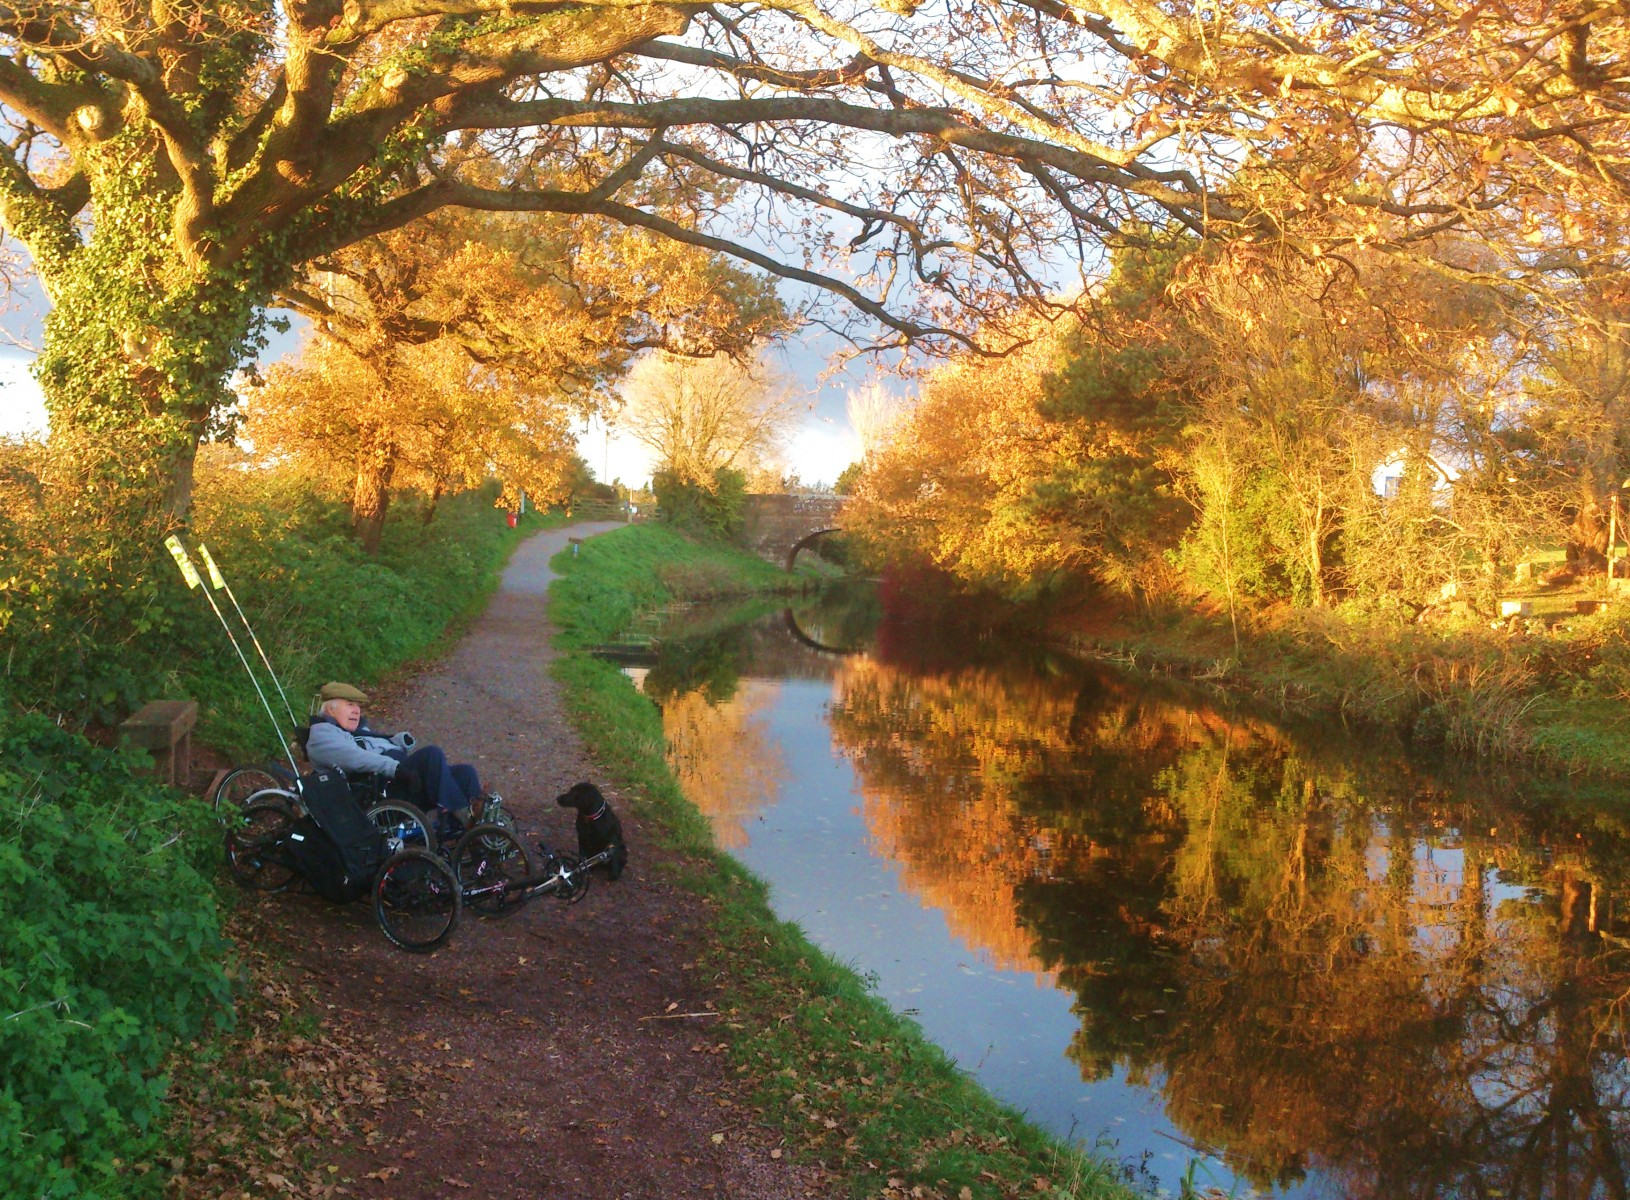 Freetrikes - Freedom from disability through cycling - Adventure bound not housebound